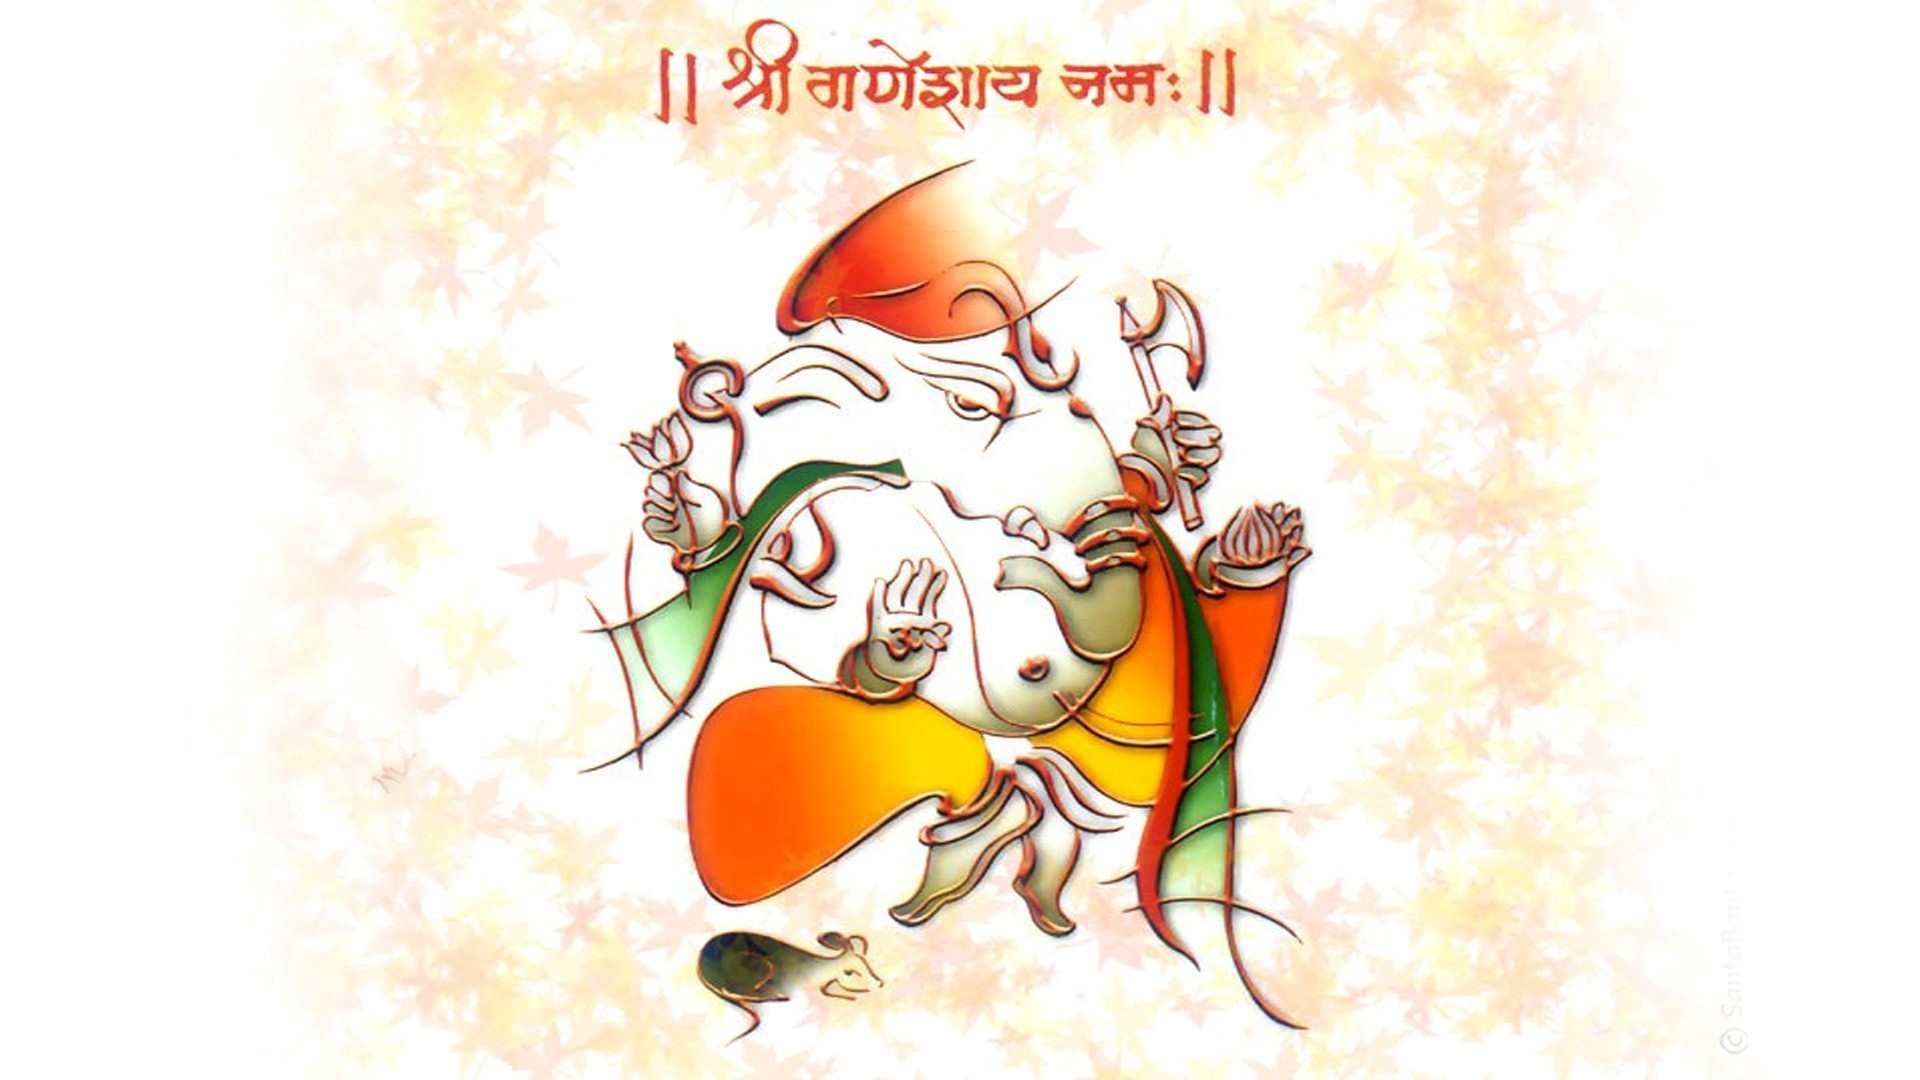 1920x1080 shree Ganeshay namah hd wallpapers